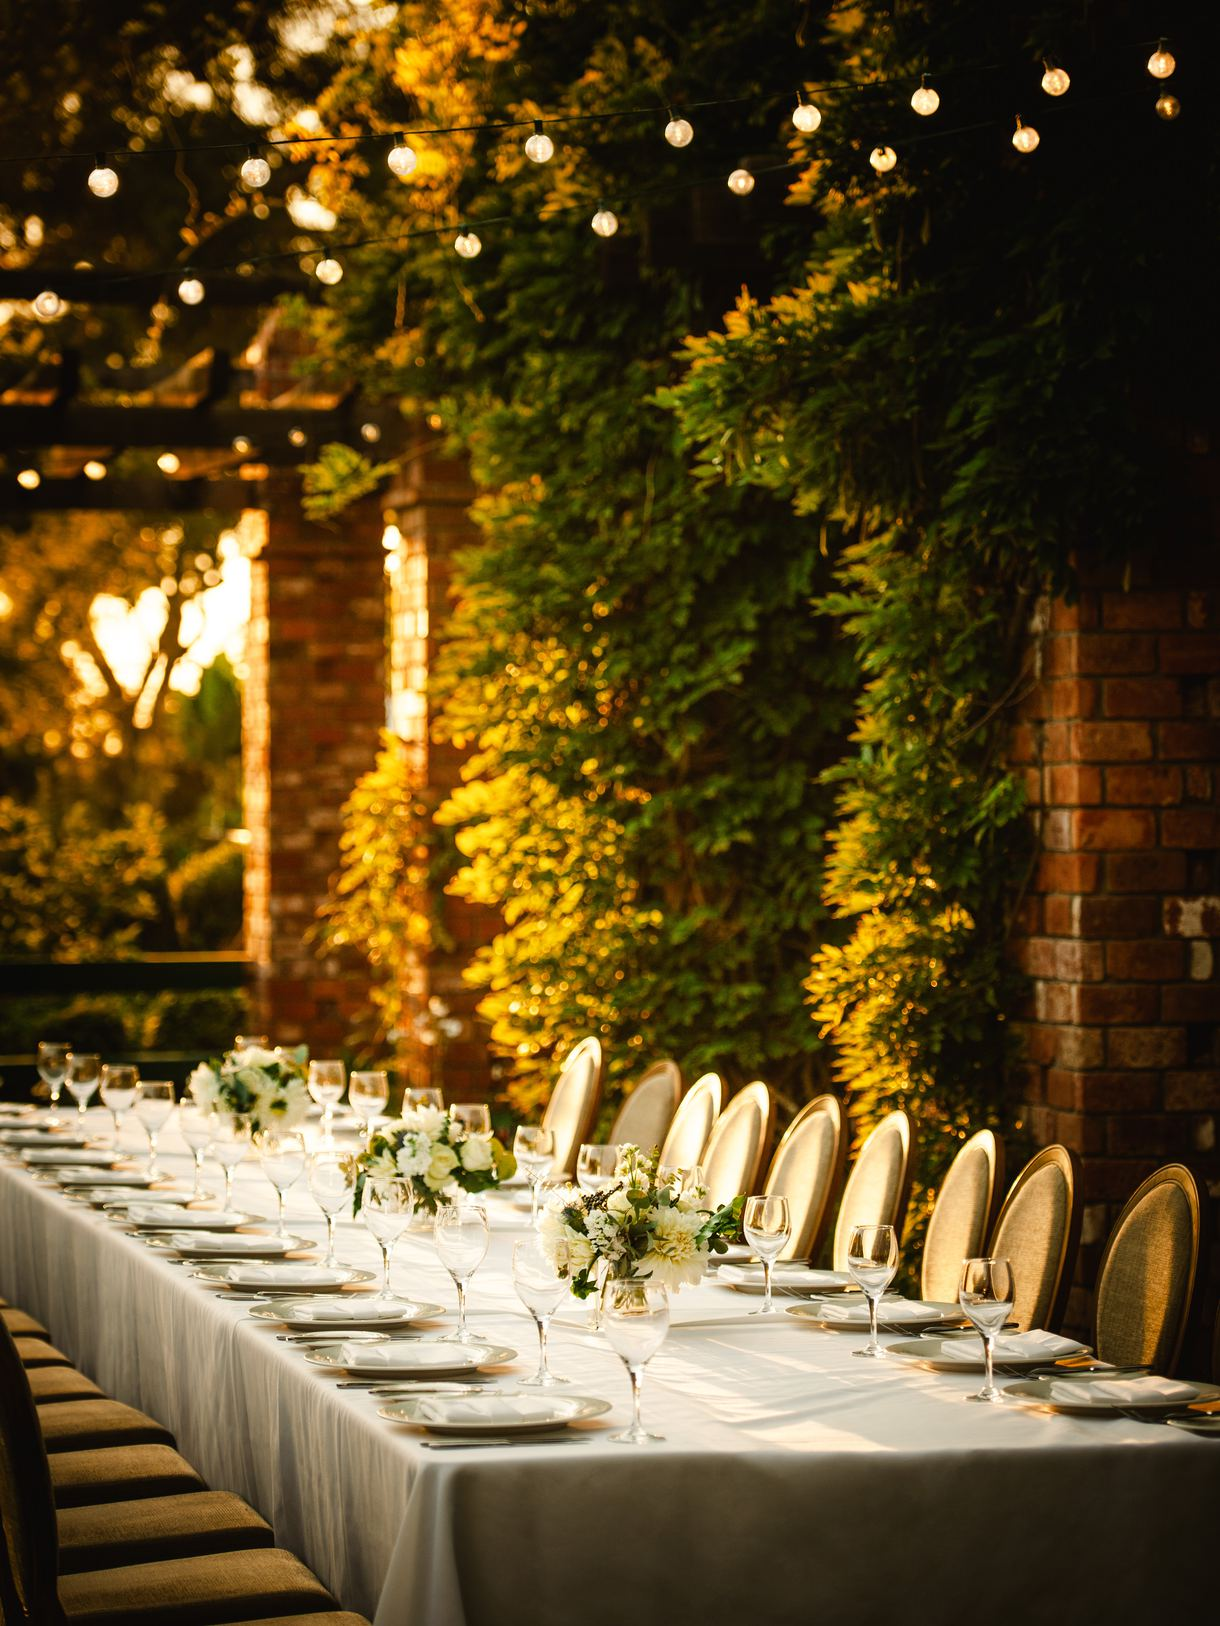 Host a wedding or special event at the resort.